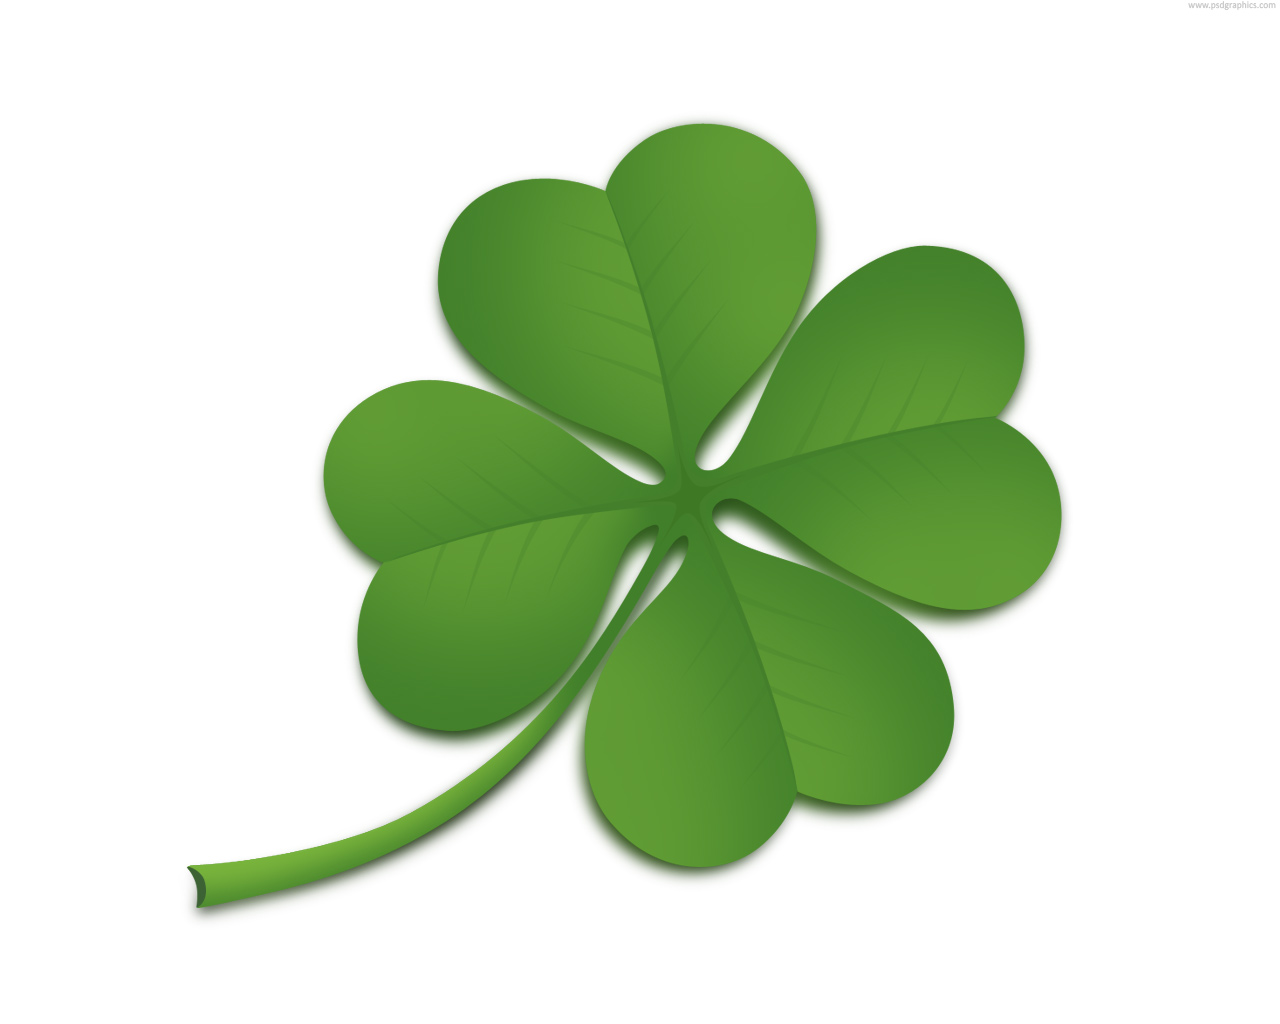 Free 4 Leaf Clover, Download Free Clip Art, Free Clip Art on.